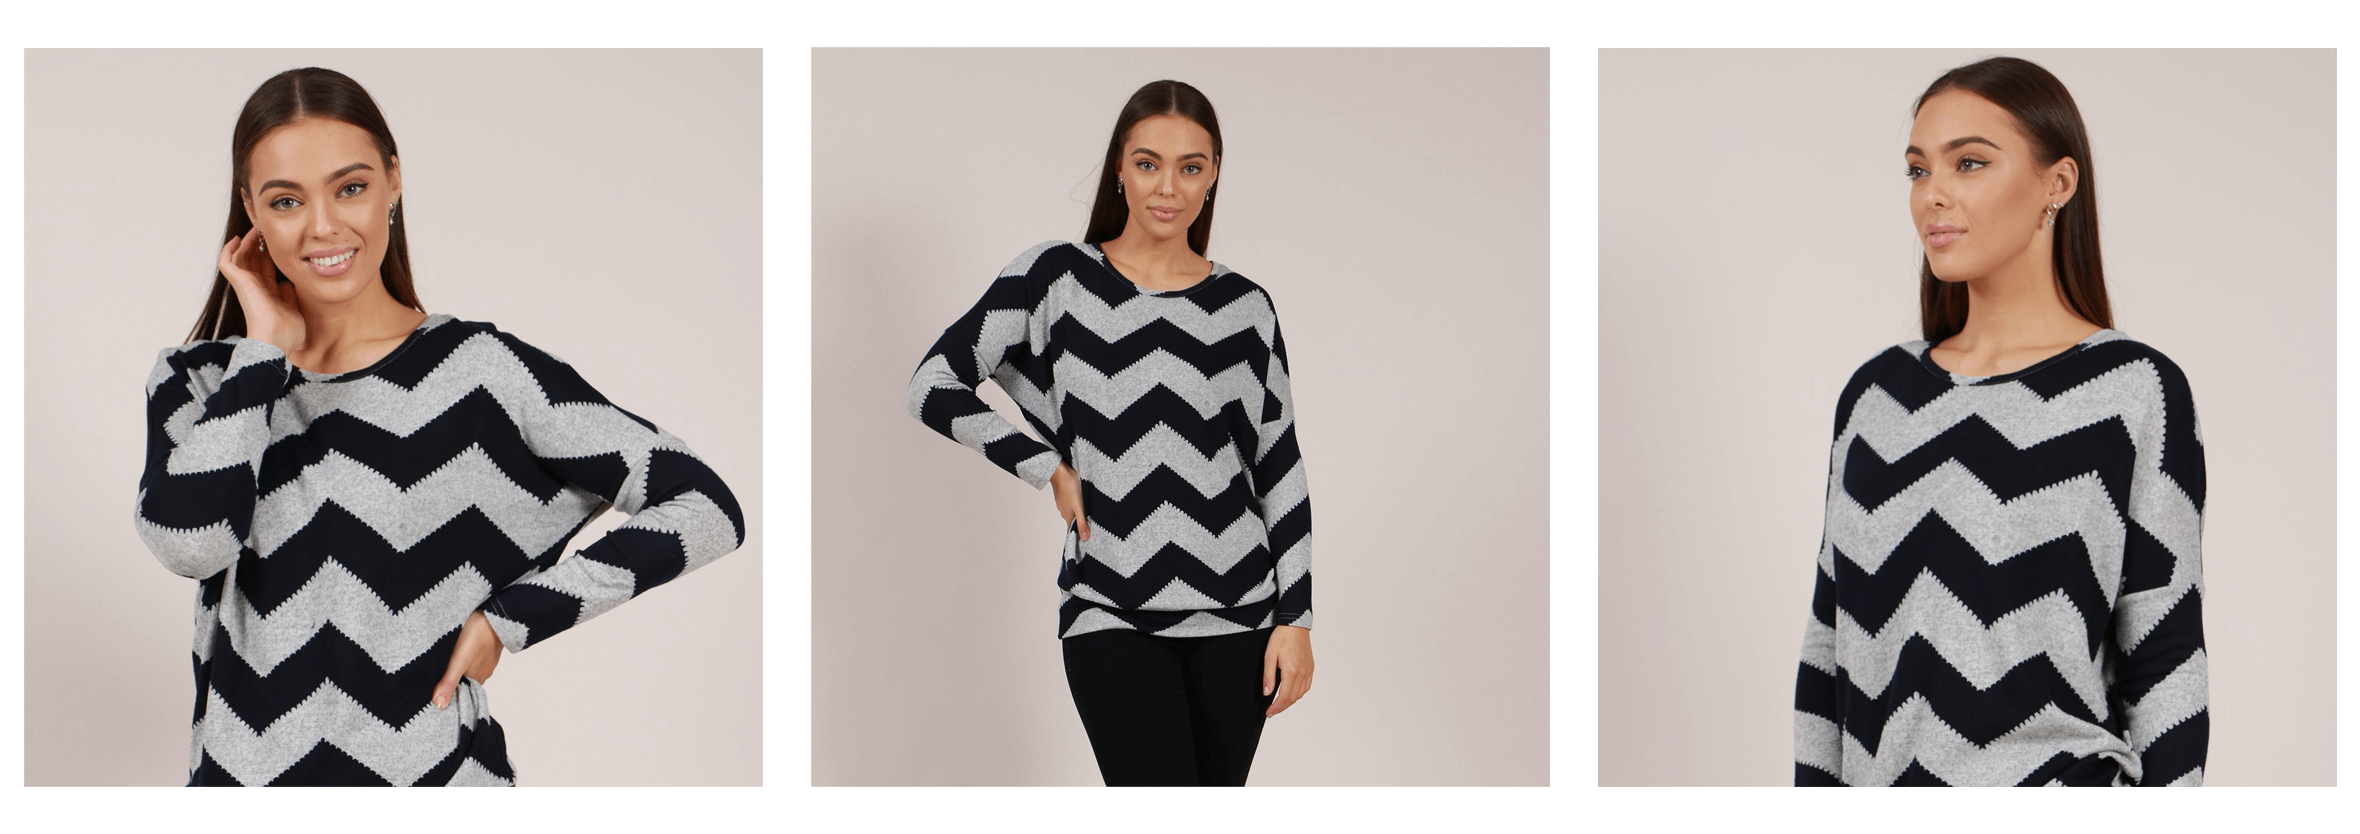 EOFYS Blowout - Zigzag Printed Top - Femme Connection